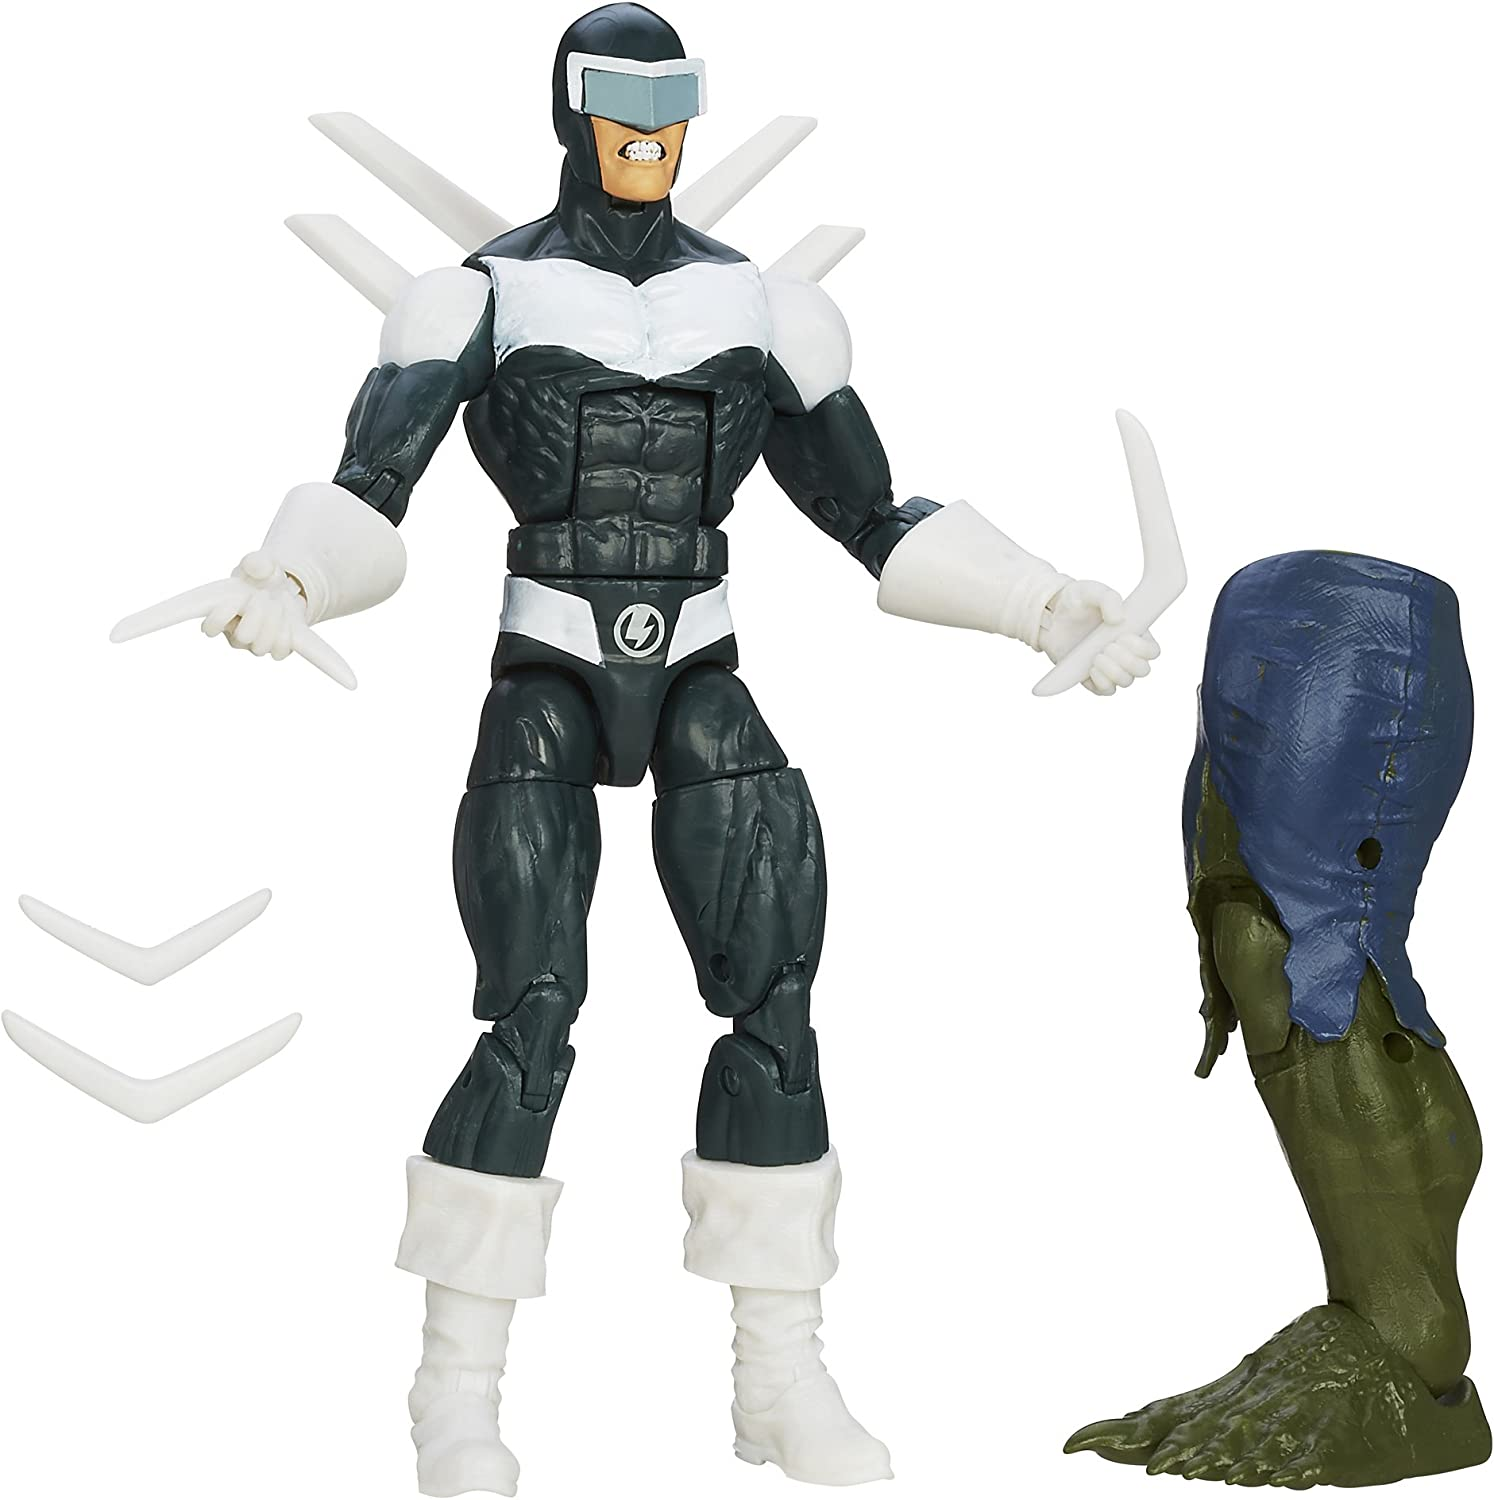 Marvel The Amazing Spider-Man 2 Marvel Legends Infinite Series Deadliest Foes Action Figure Boomerang, 6 Inches: Amazon.es: Juguetes y juegos